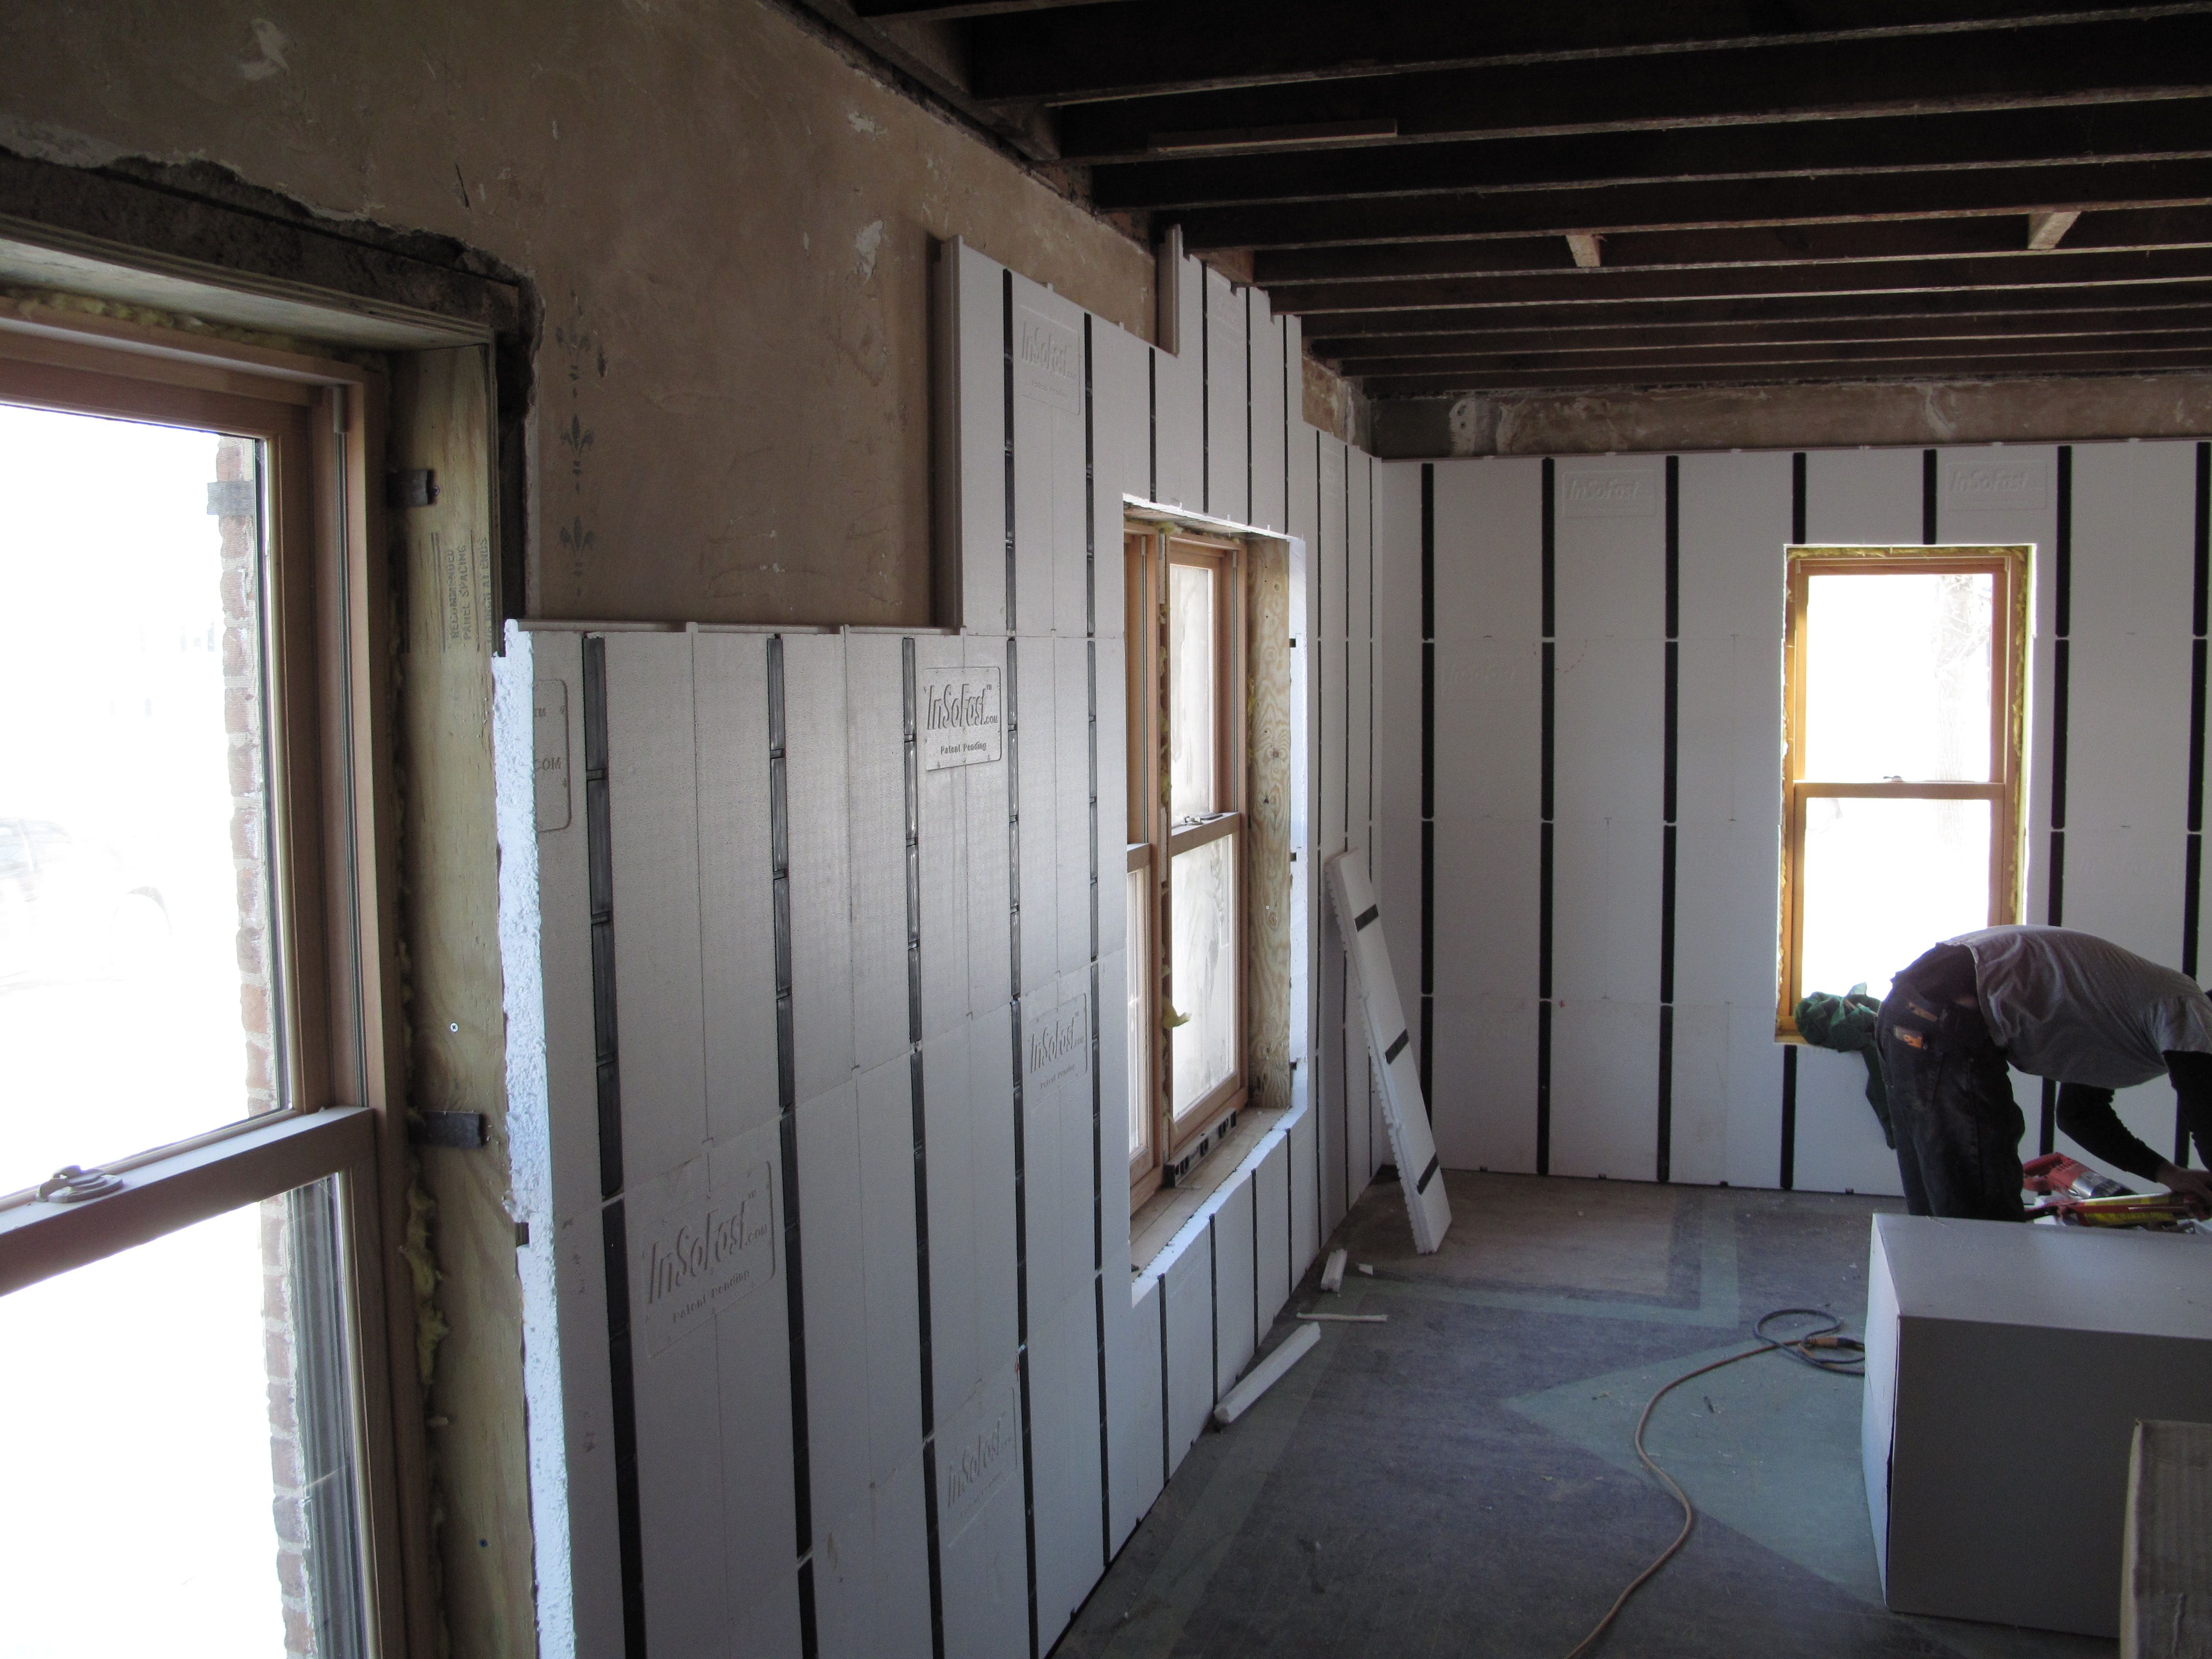 An Insofast Interior Retrofit Project If You Re Looking To Insulate A Chilly Home With Masonry Walls Insofast Makes It Easy Masonry Wall Residential Remodel